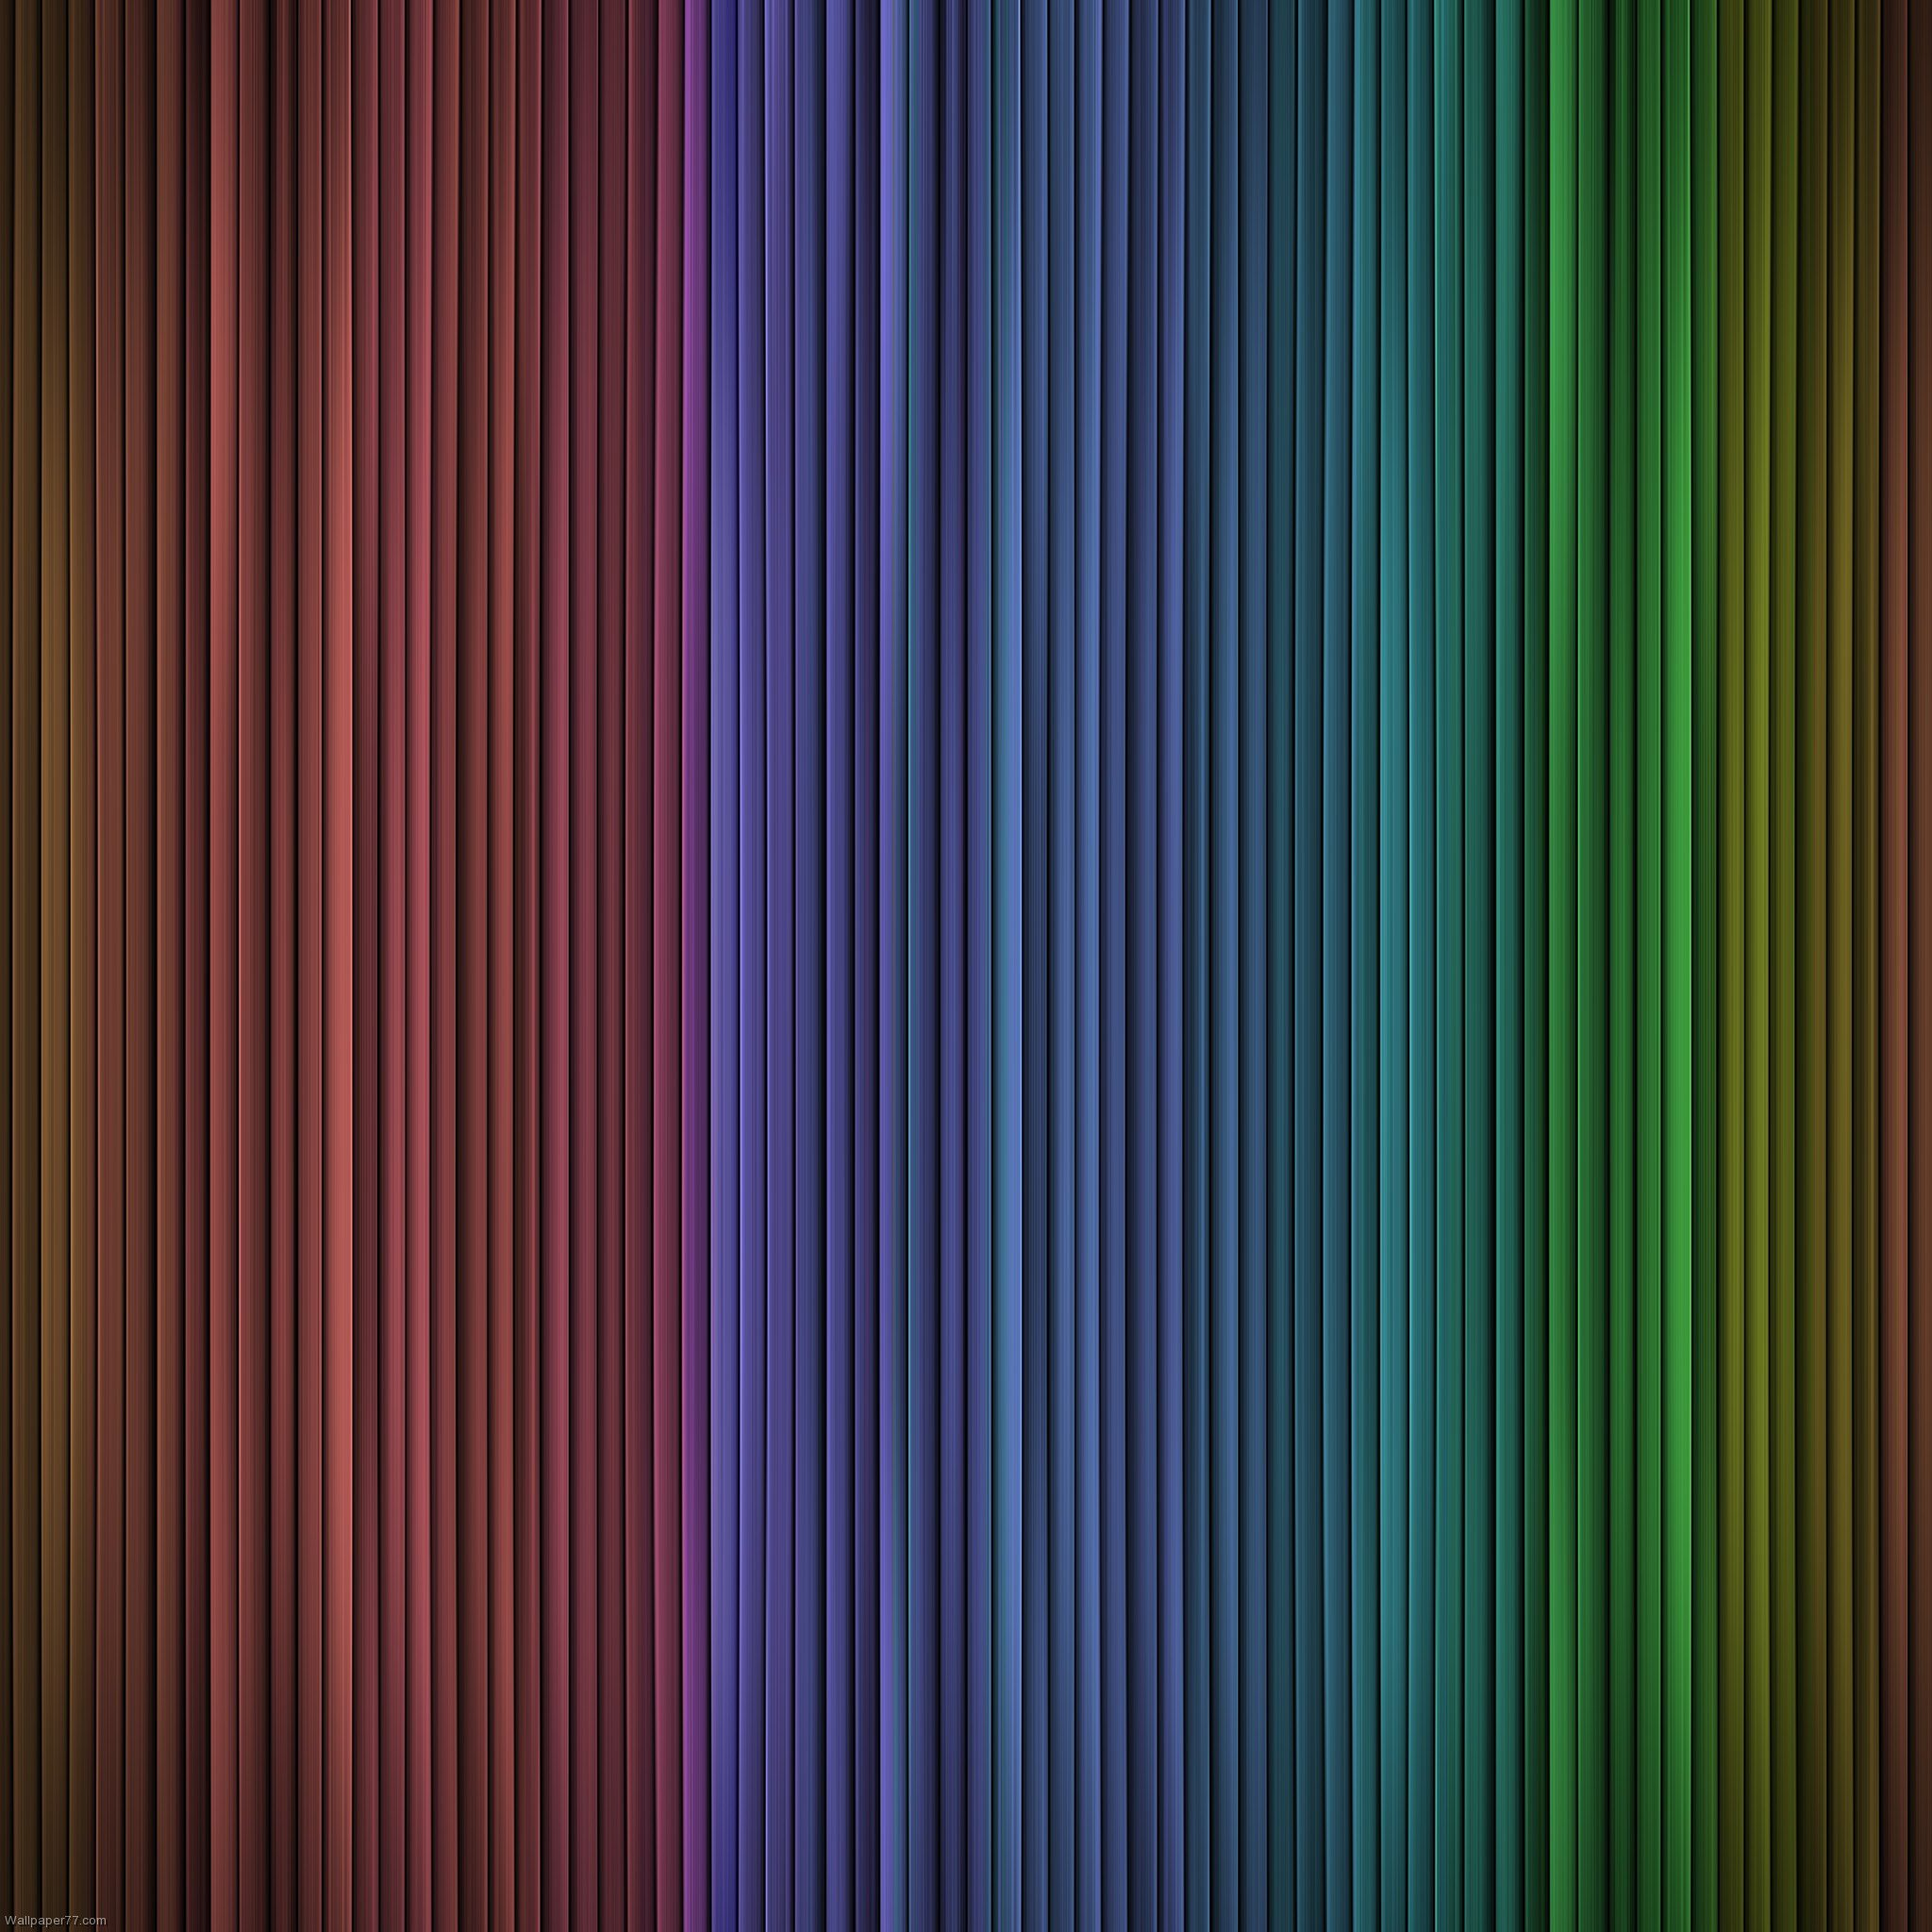 ipad pro 12.9 wallpaper